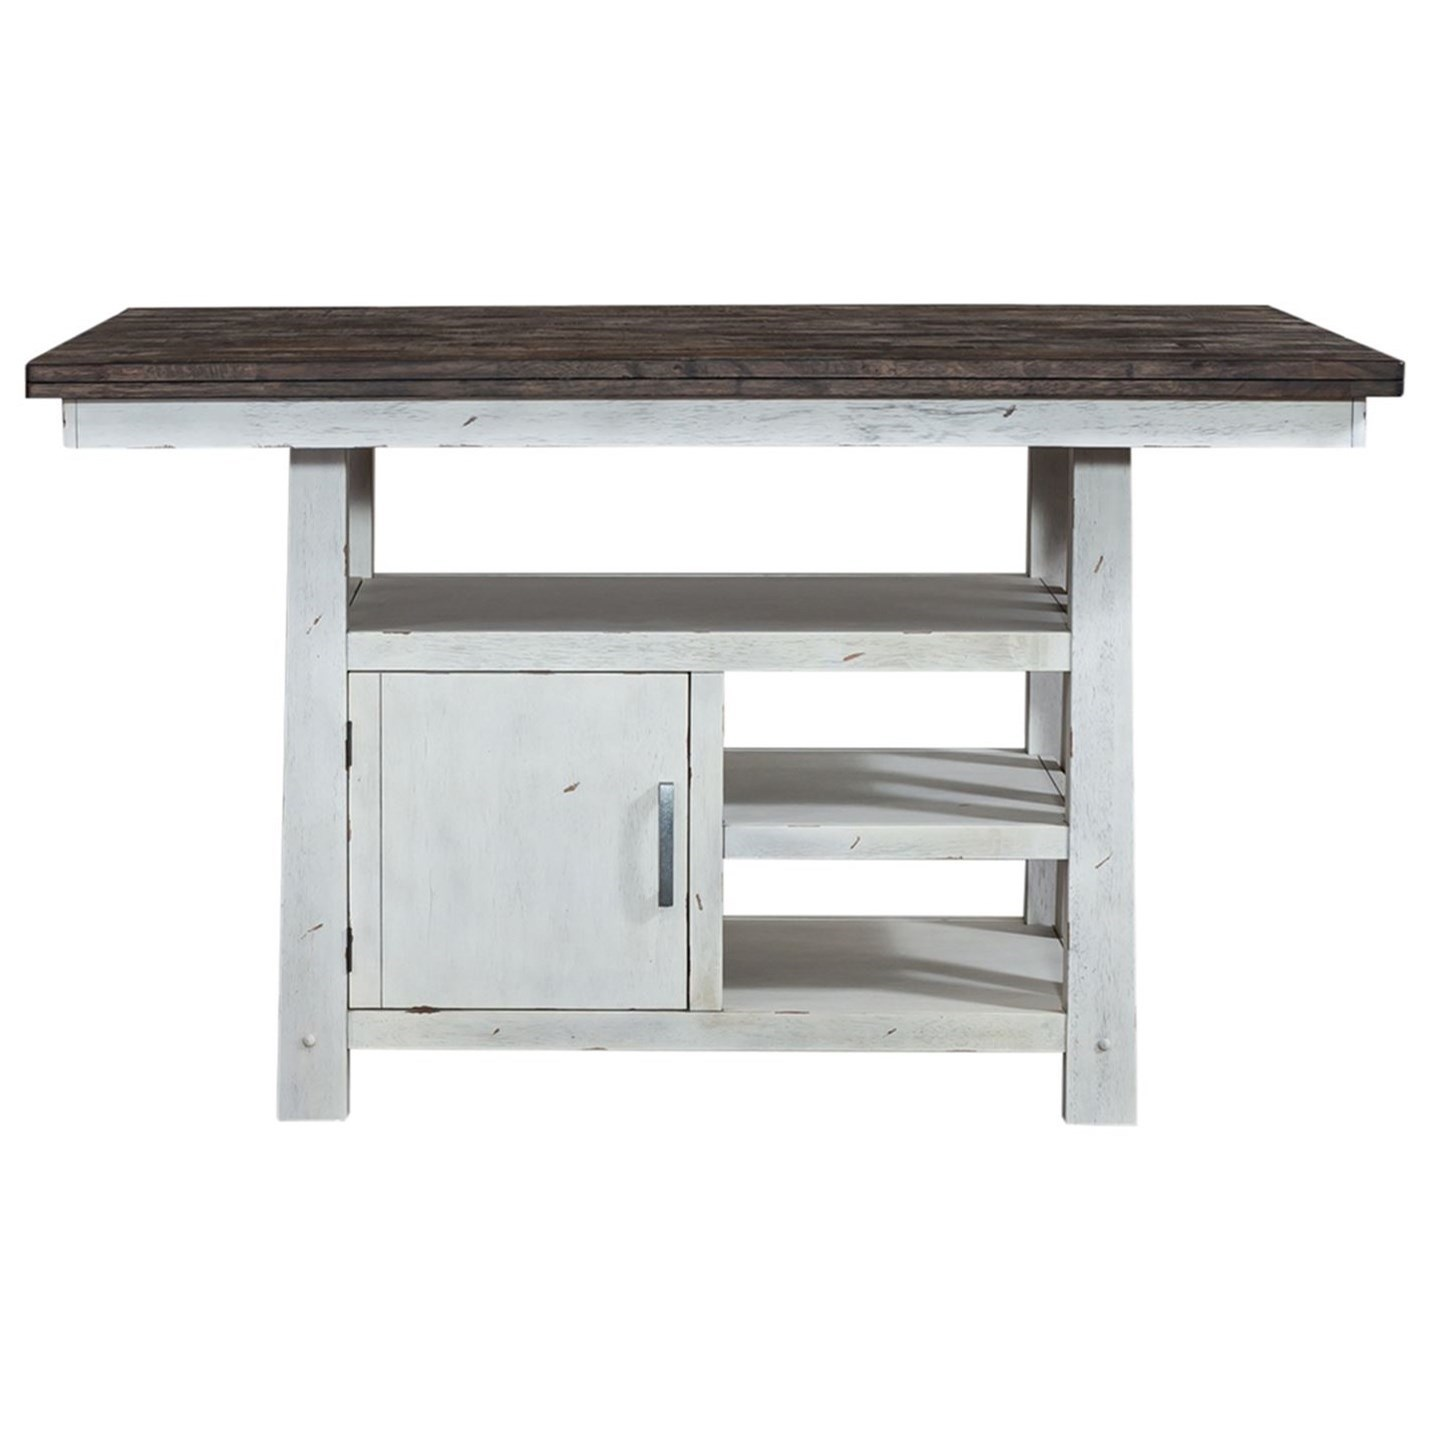 Farmhouse Center Island Table by Libby at Walker's Furniture